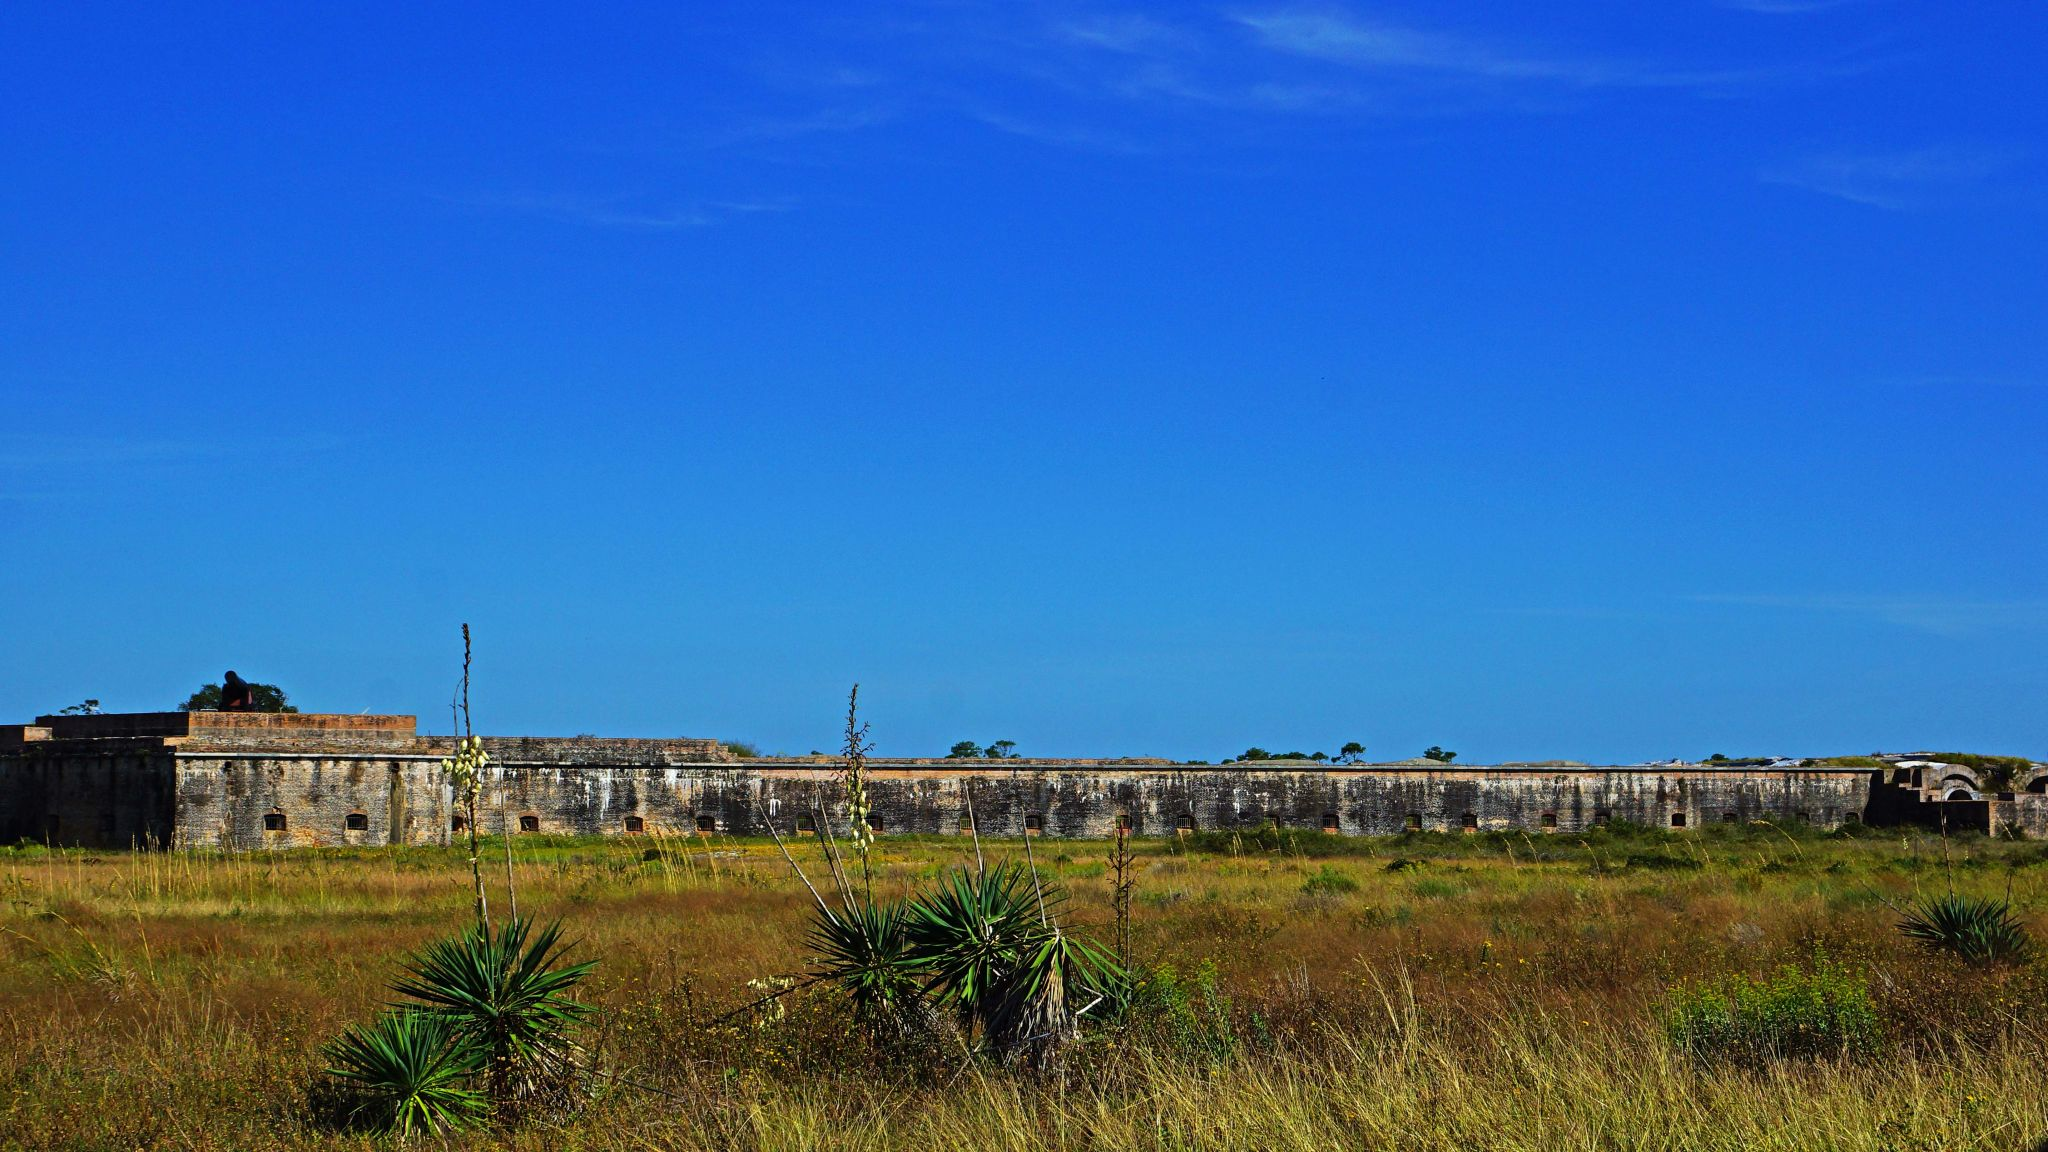 Ft. Pickens, USA